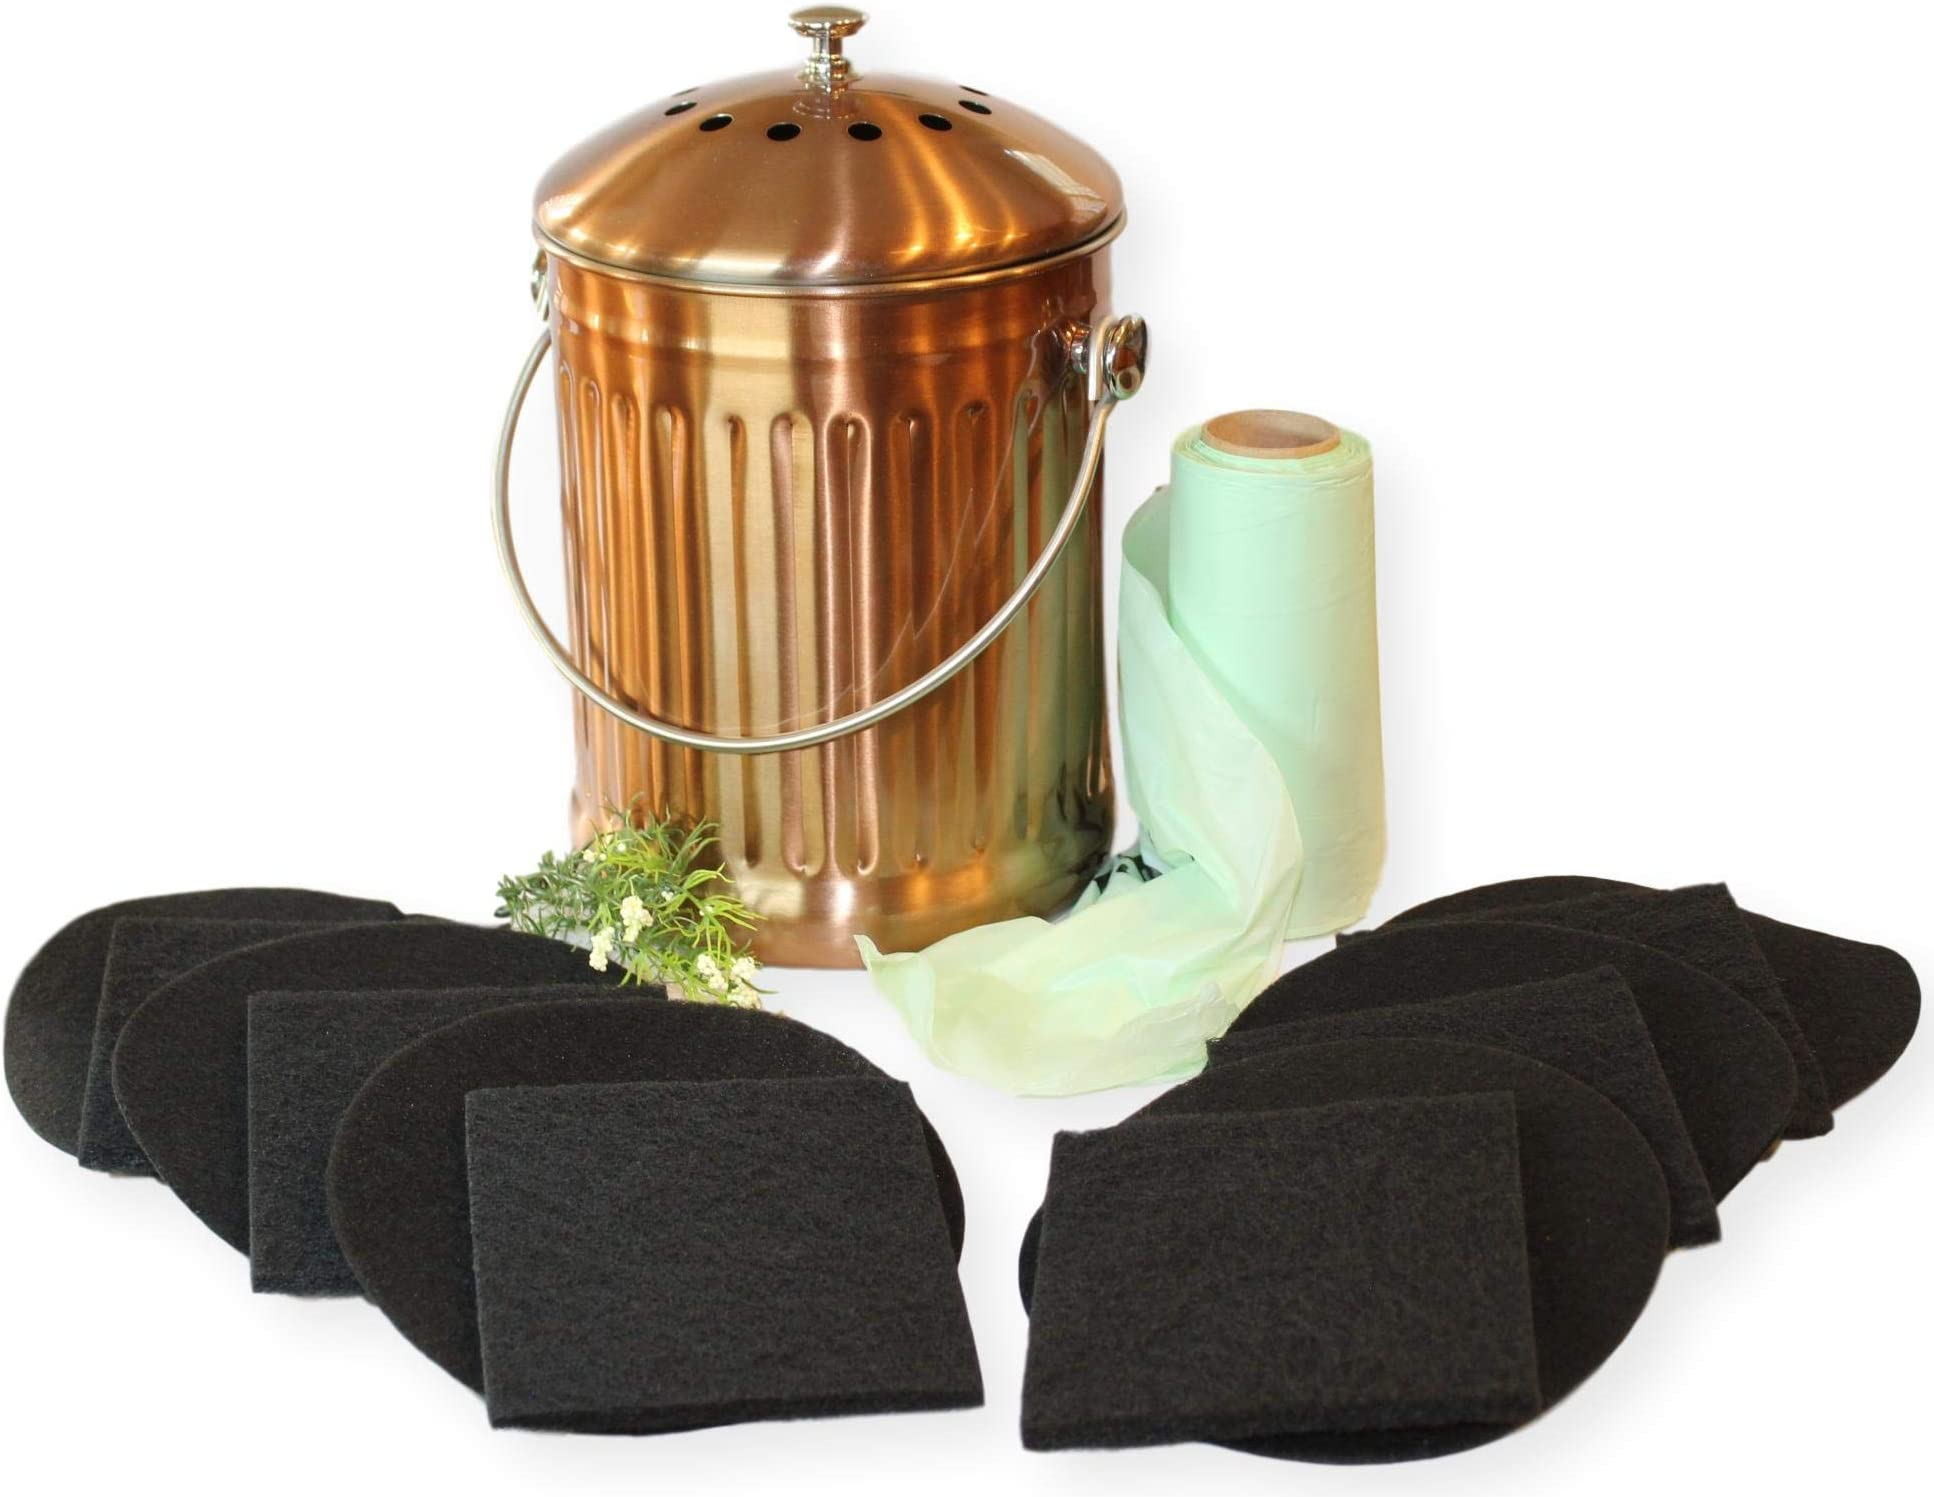 Gardenatomy Copper Kitchen Compost Bin Indoor Countertop – LARGE 1.3 Gallon Food Scrap Container, Leak proof Stainless Steel with Copper - Includes 1 Year's Worth of Dual Charcoal Filters & Liner Bags